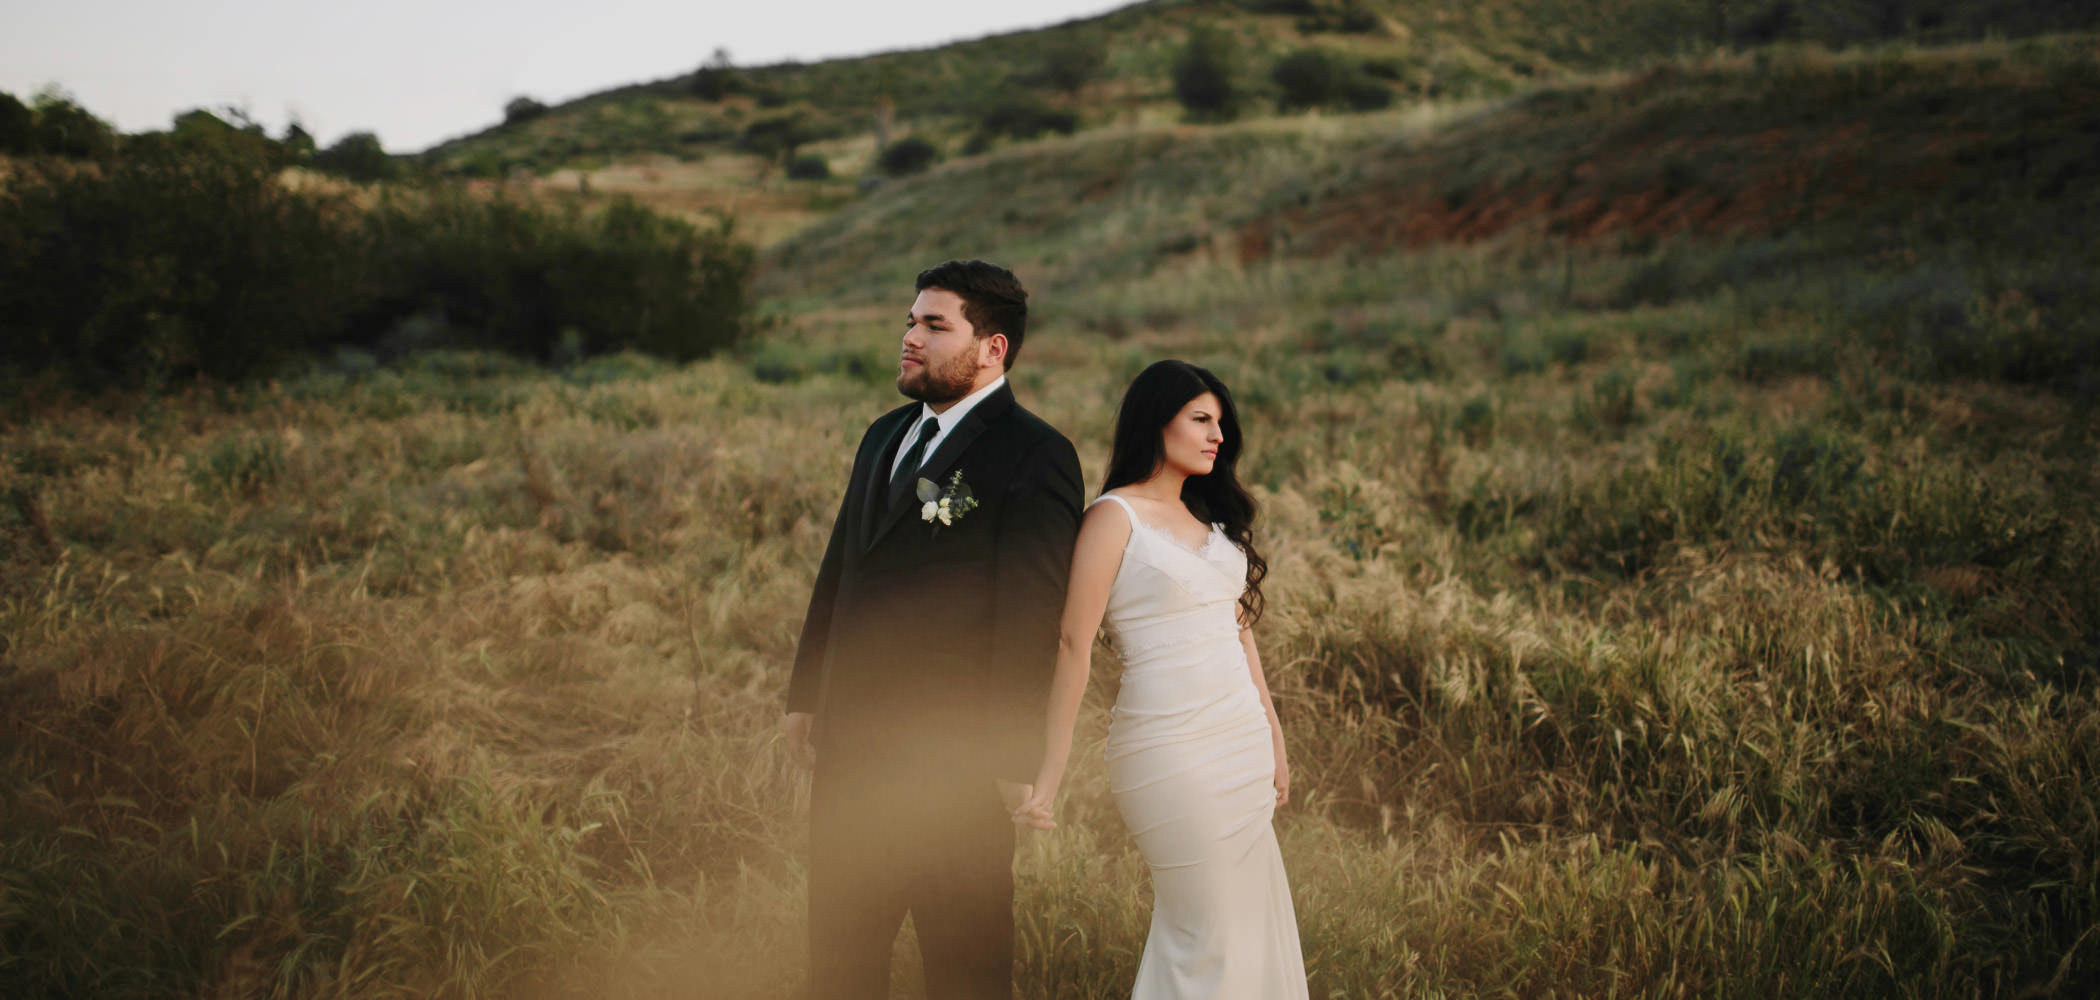 Bride and groom posing in a field at golden hour in Escondido